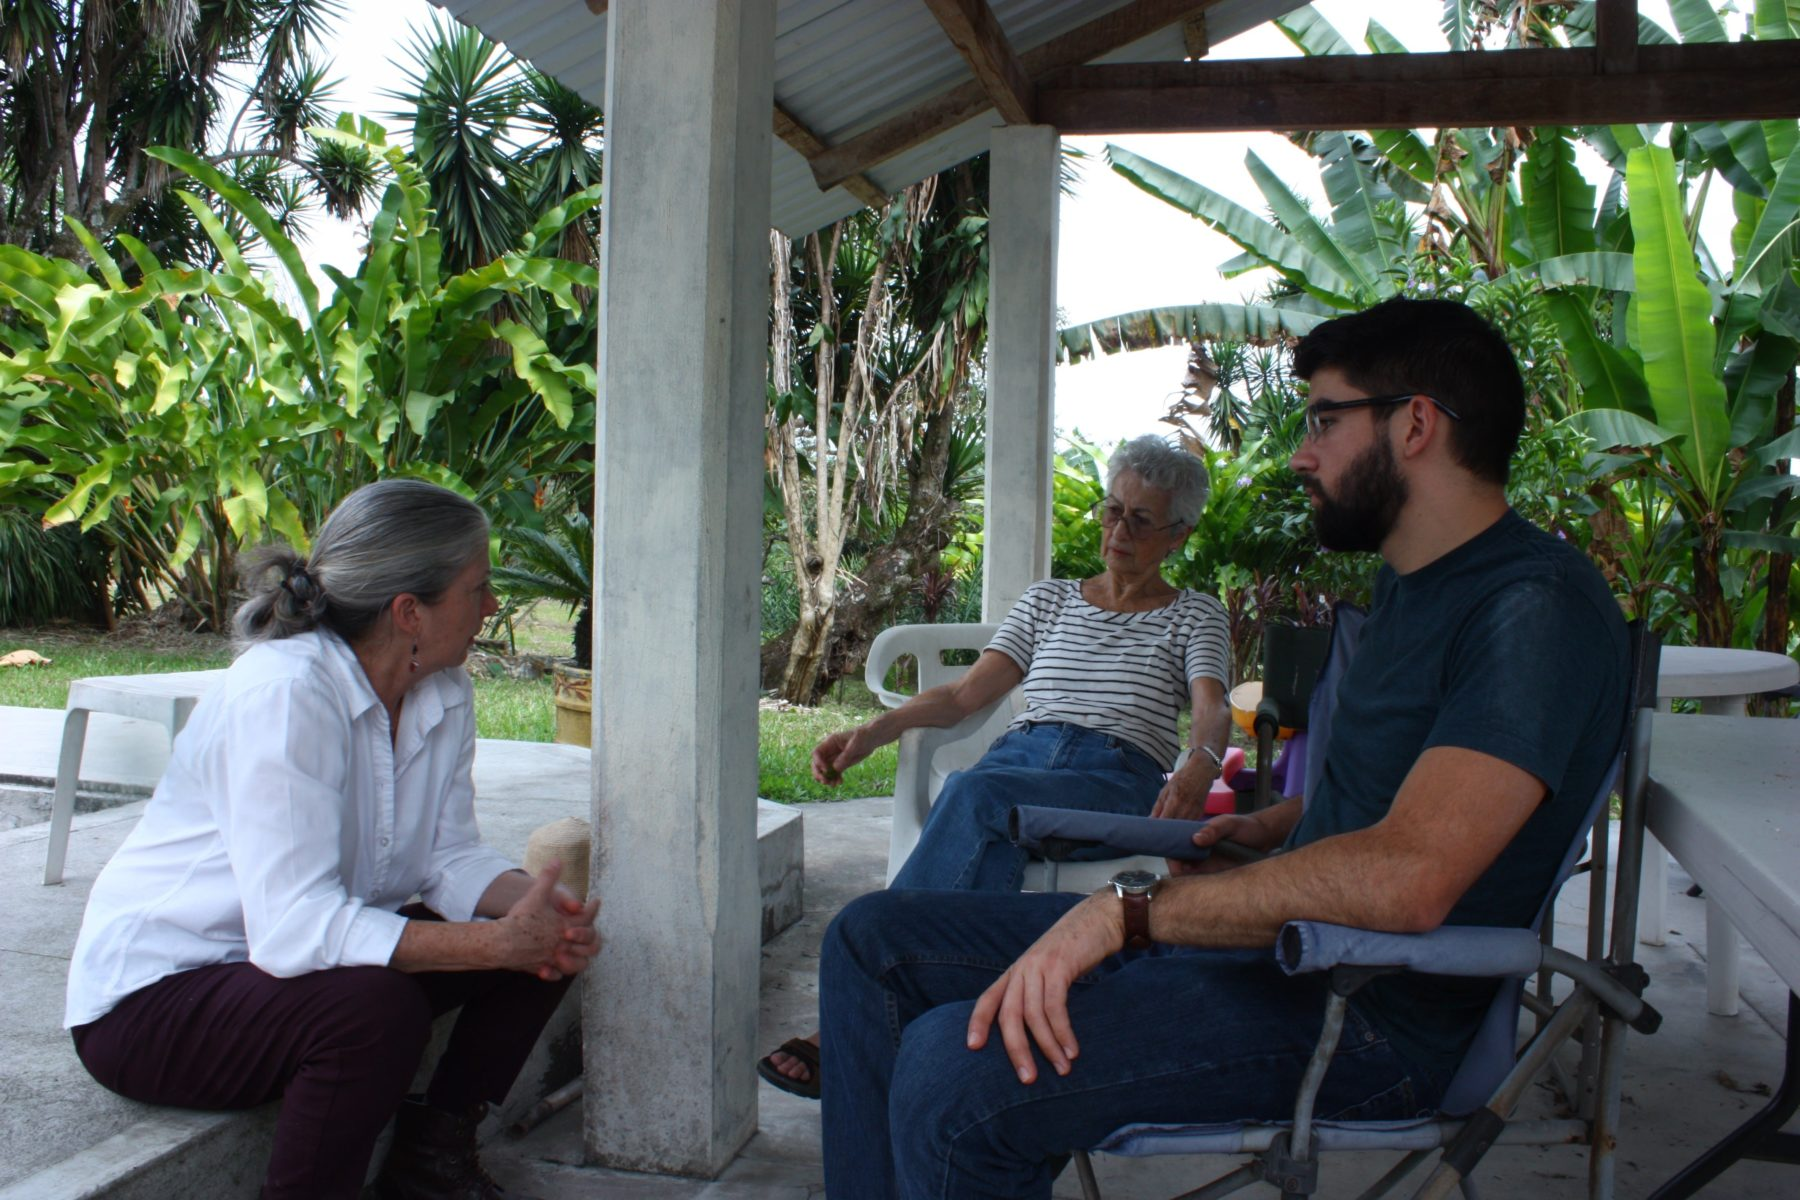 The Vizcaino family of Finca Esperanza established our understanding of mutually beneficial coffee sourcing.